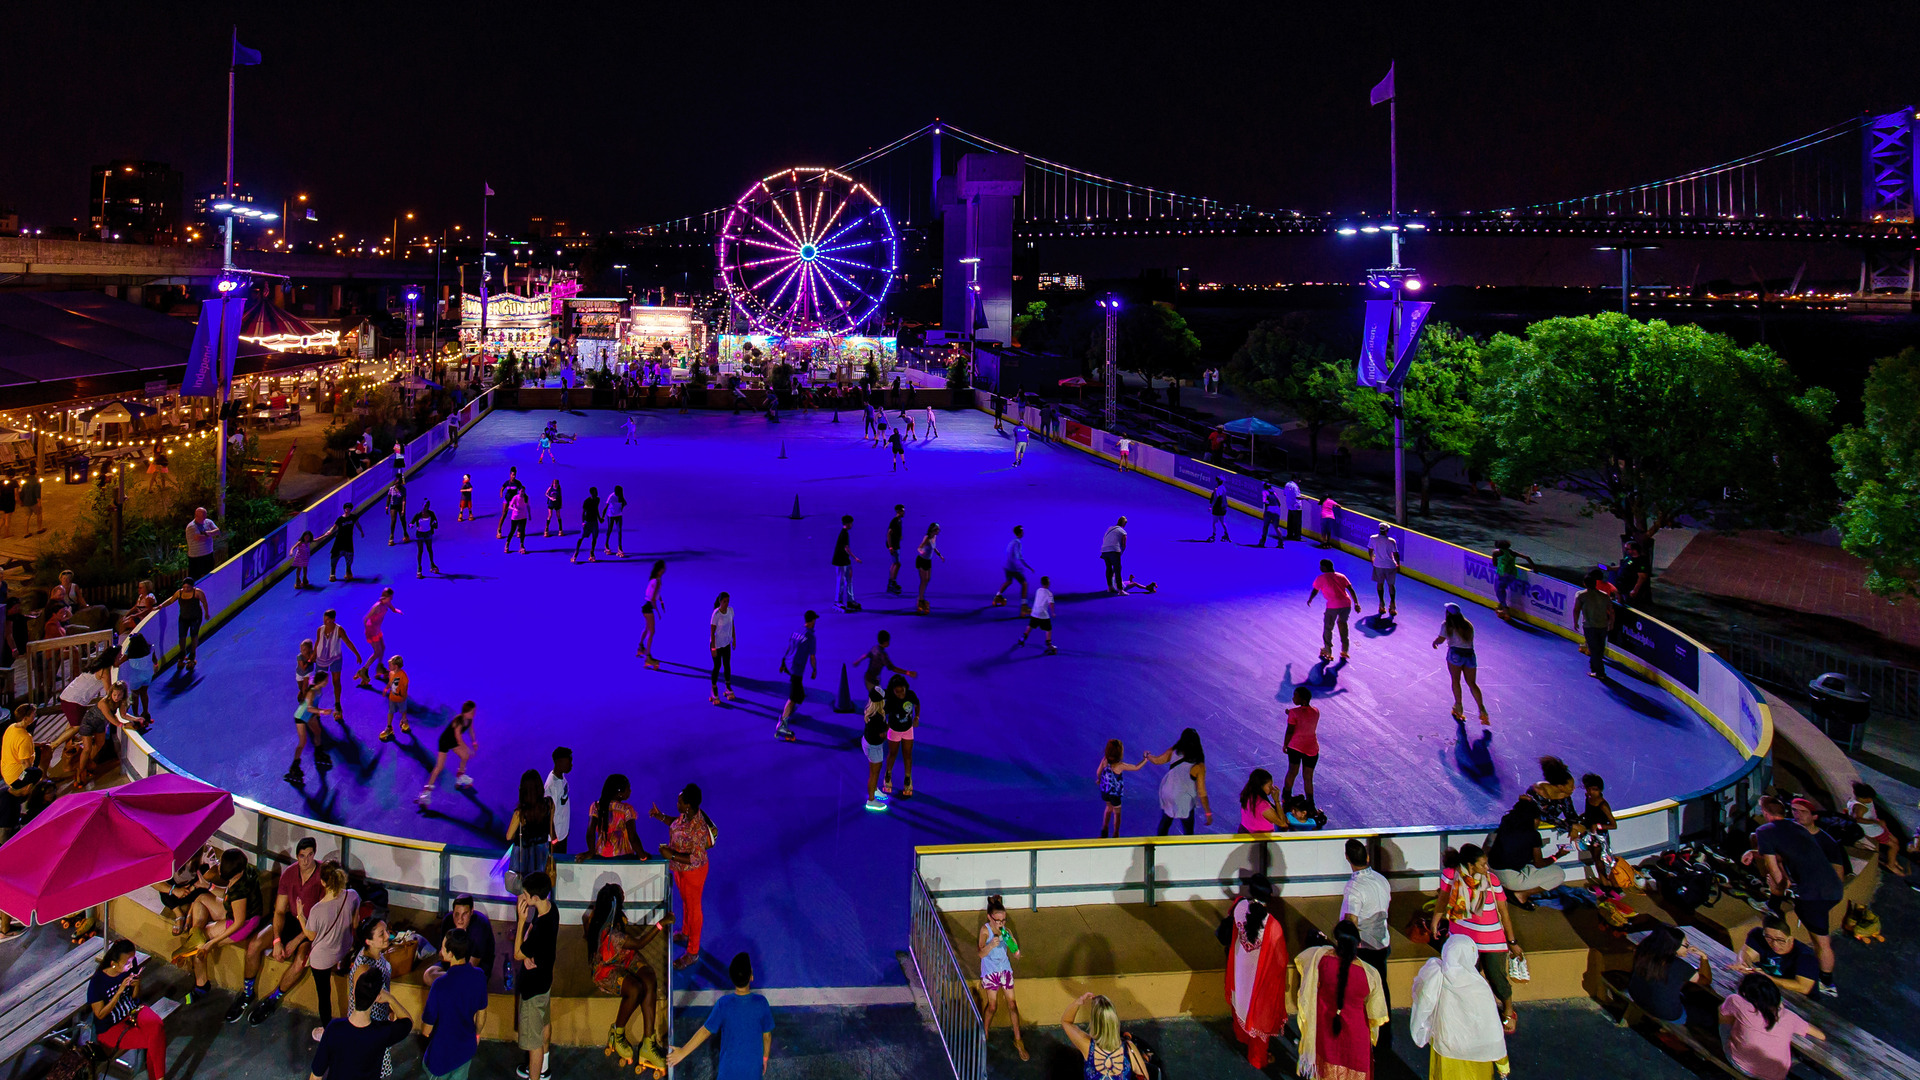 Blue Cross RiverRink Summerfest offers a roller skating rink, a Ferris wheel, a play area for kids, multiple food and drink options, and tons of summer fun. (Image: Matt Stanley)<p></p>